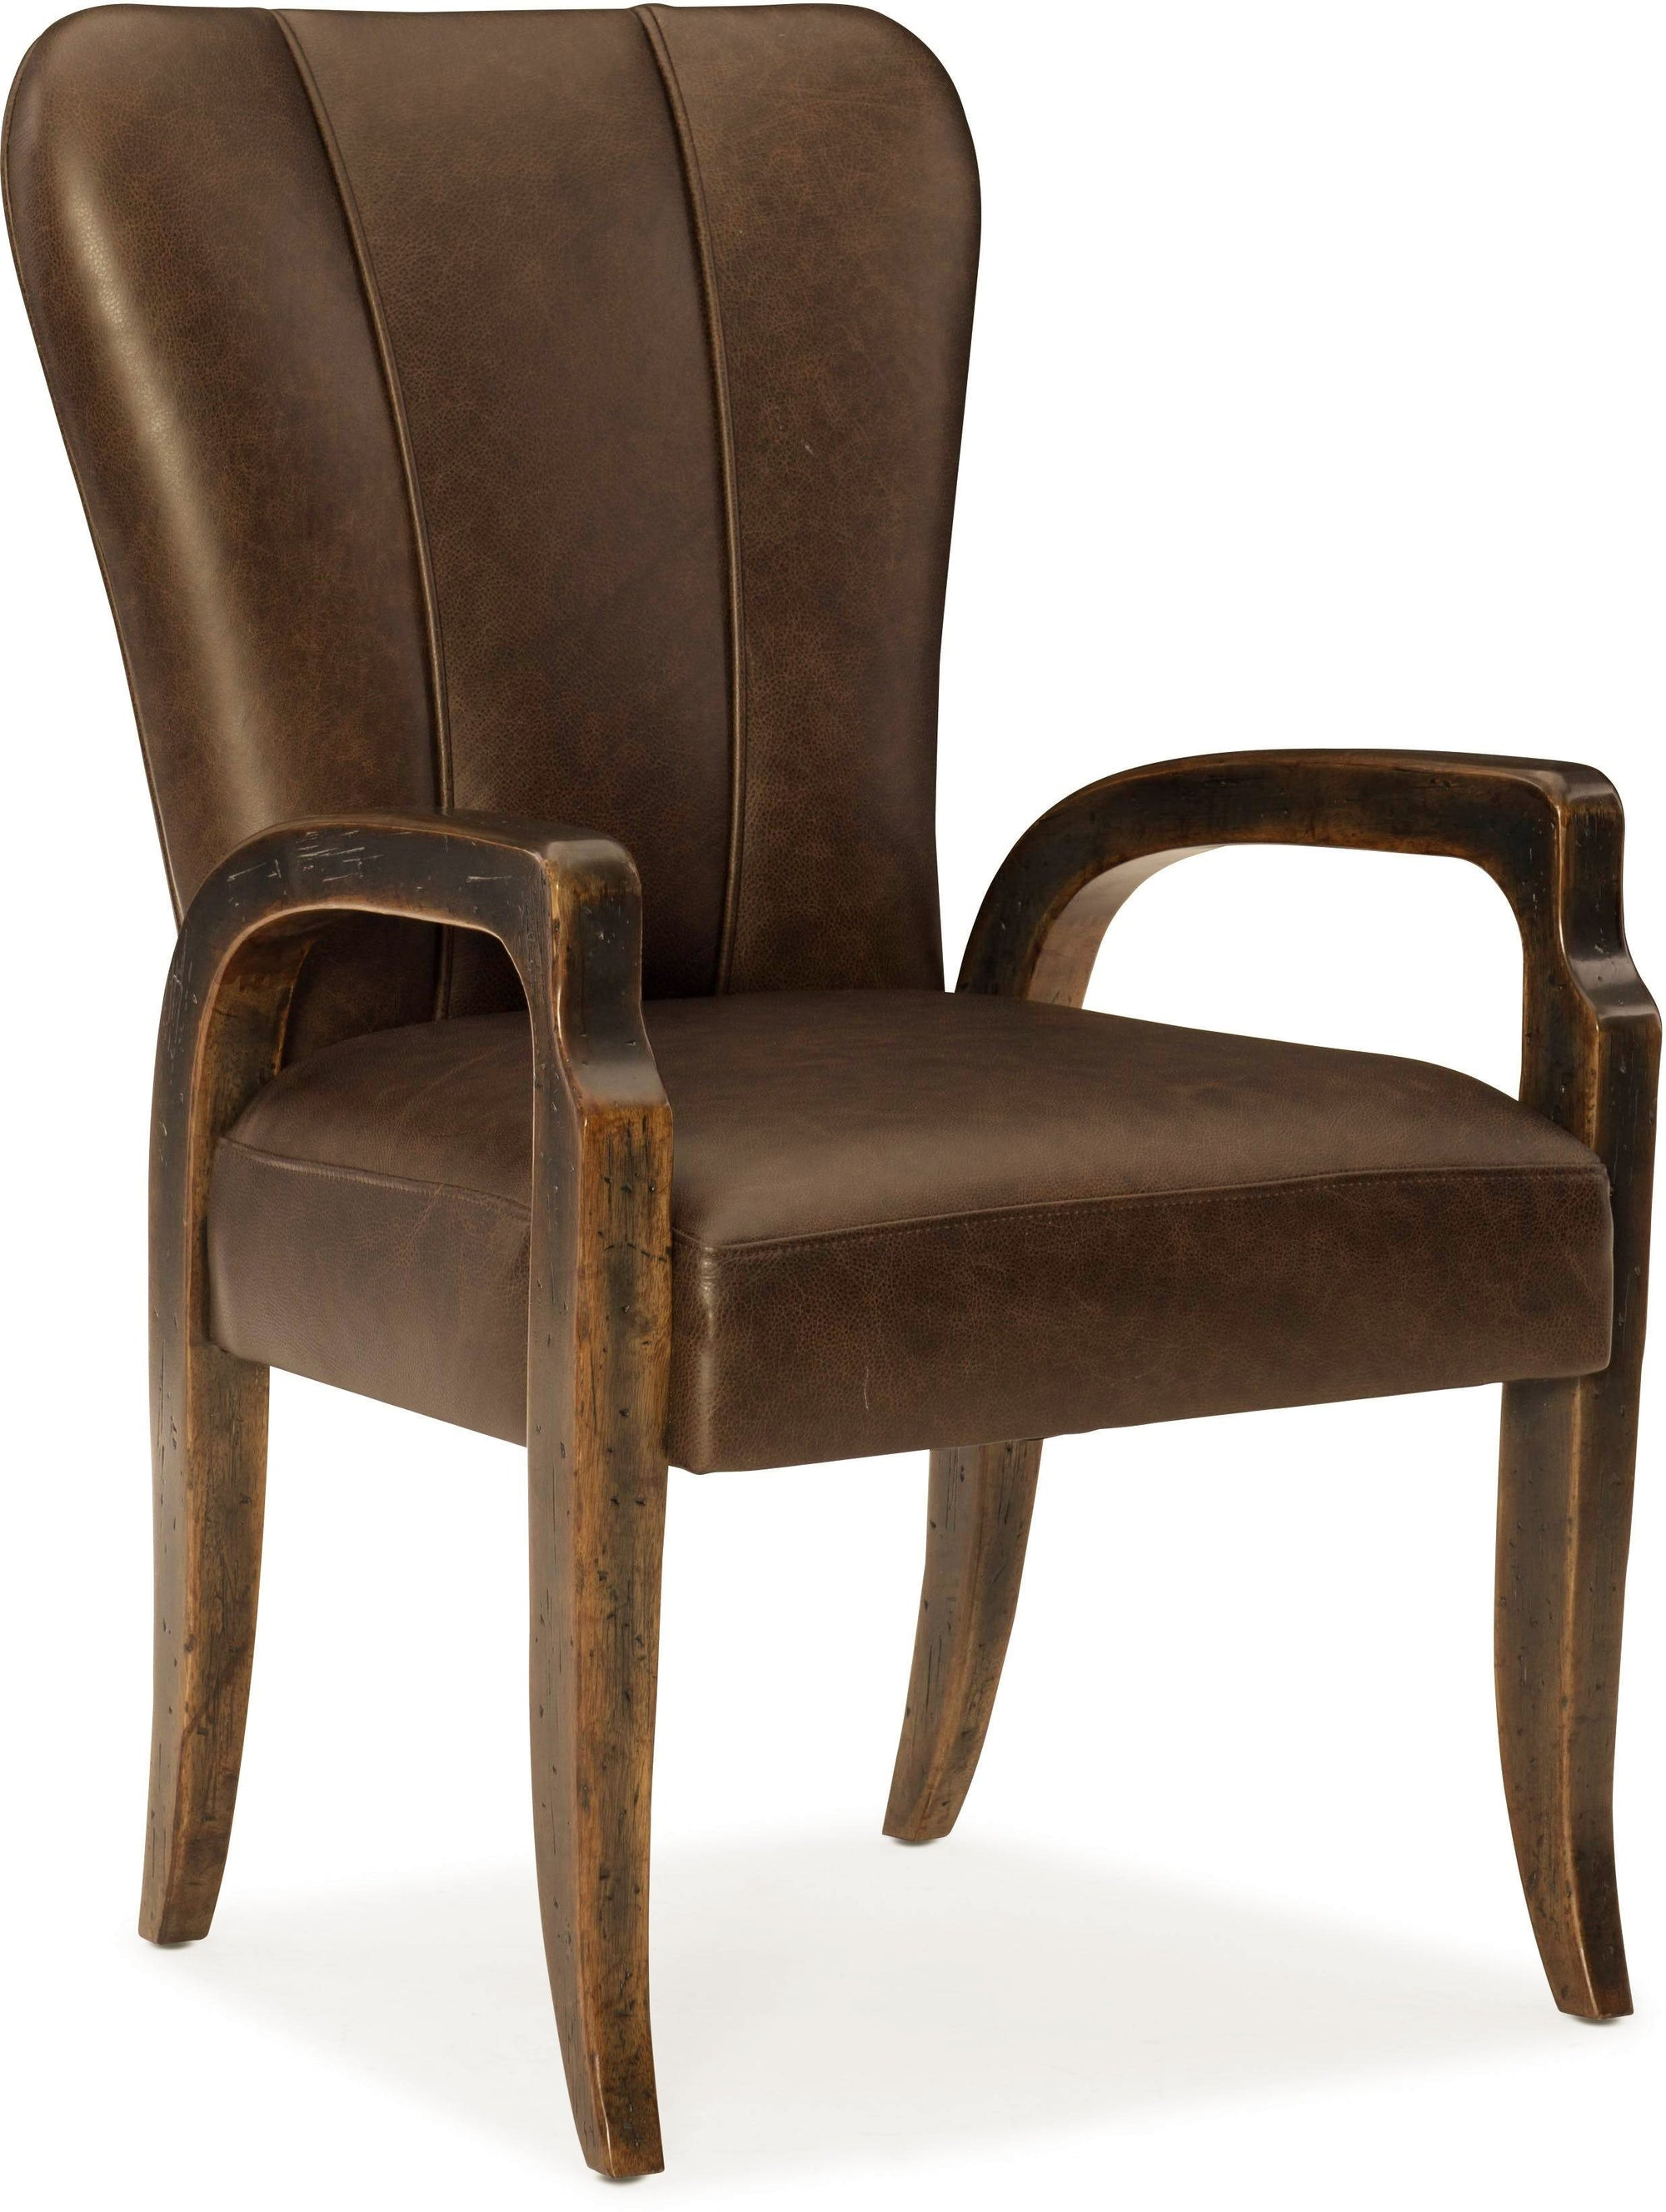 Entice Dining chair